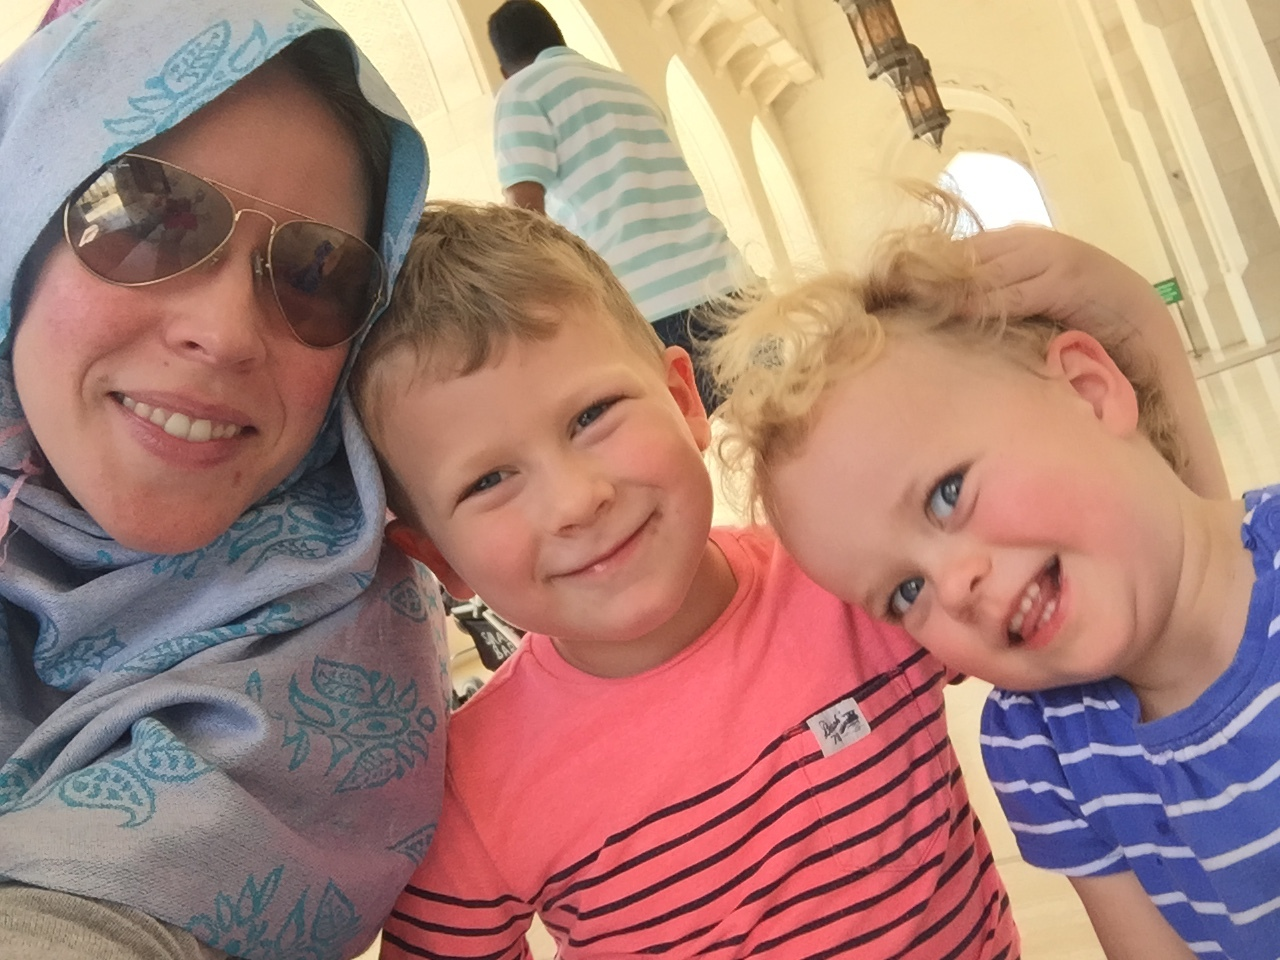 Muscat Grand Mosque Selfie with Things.JPG